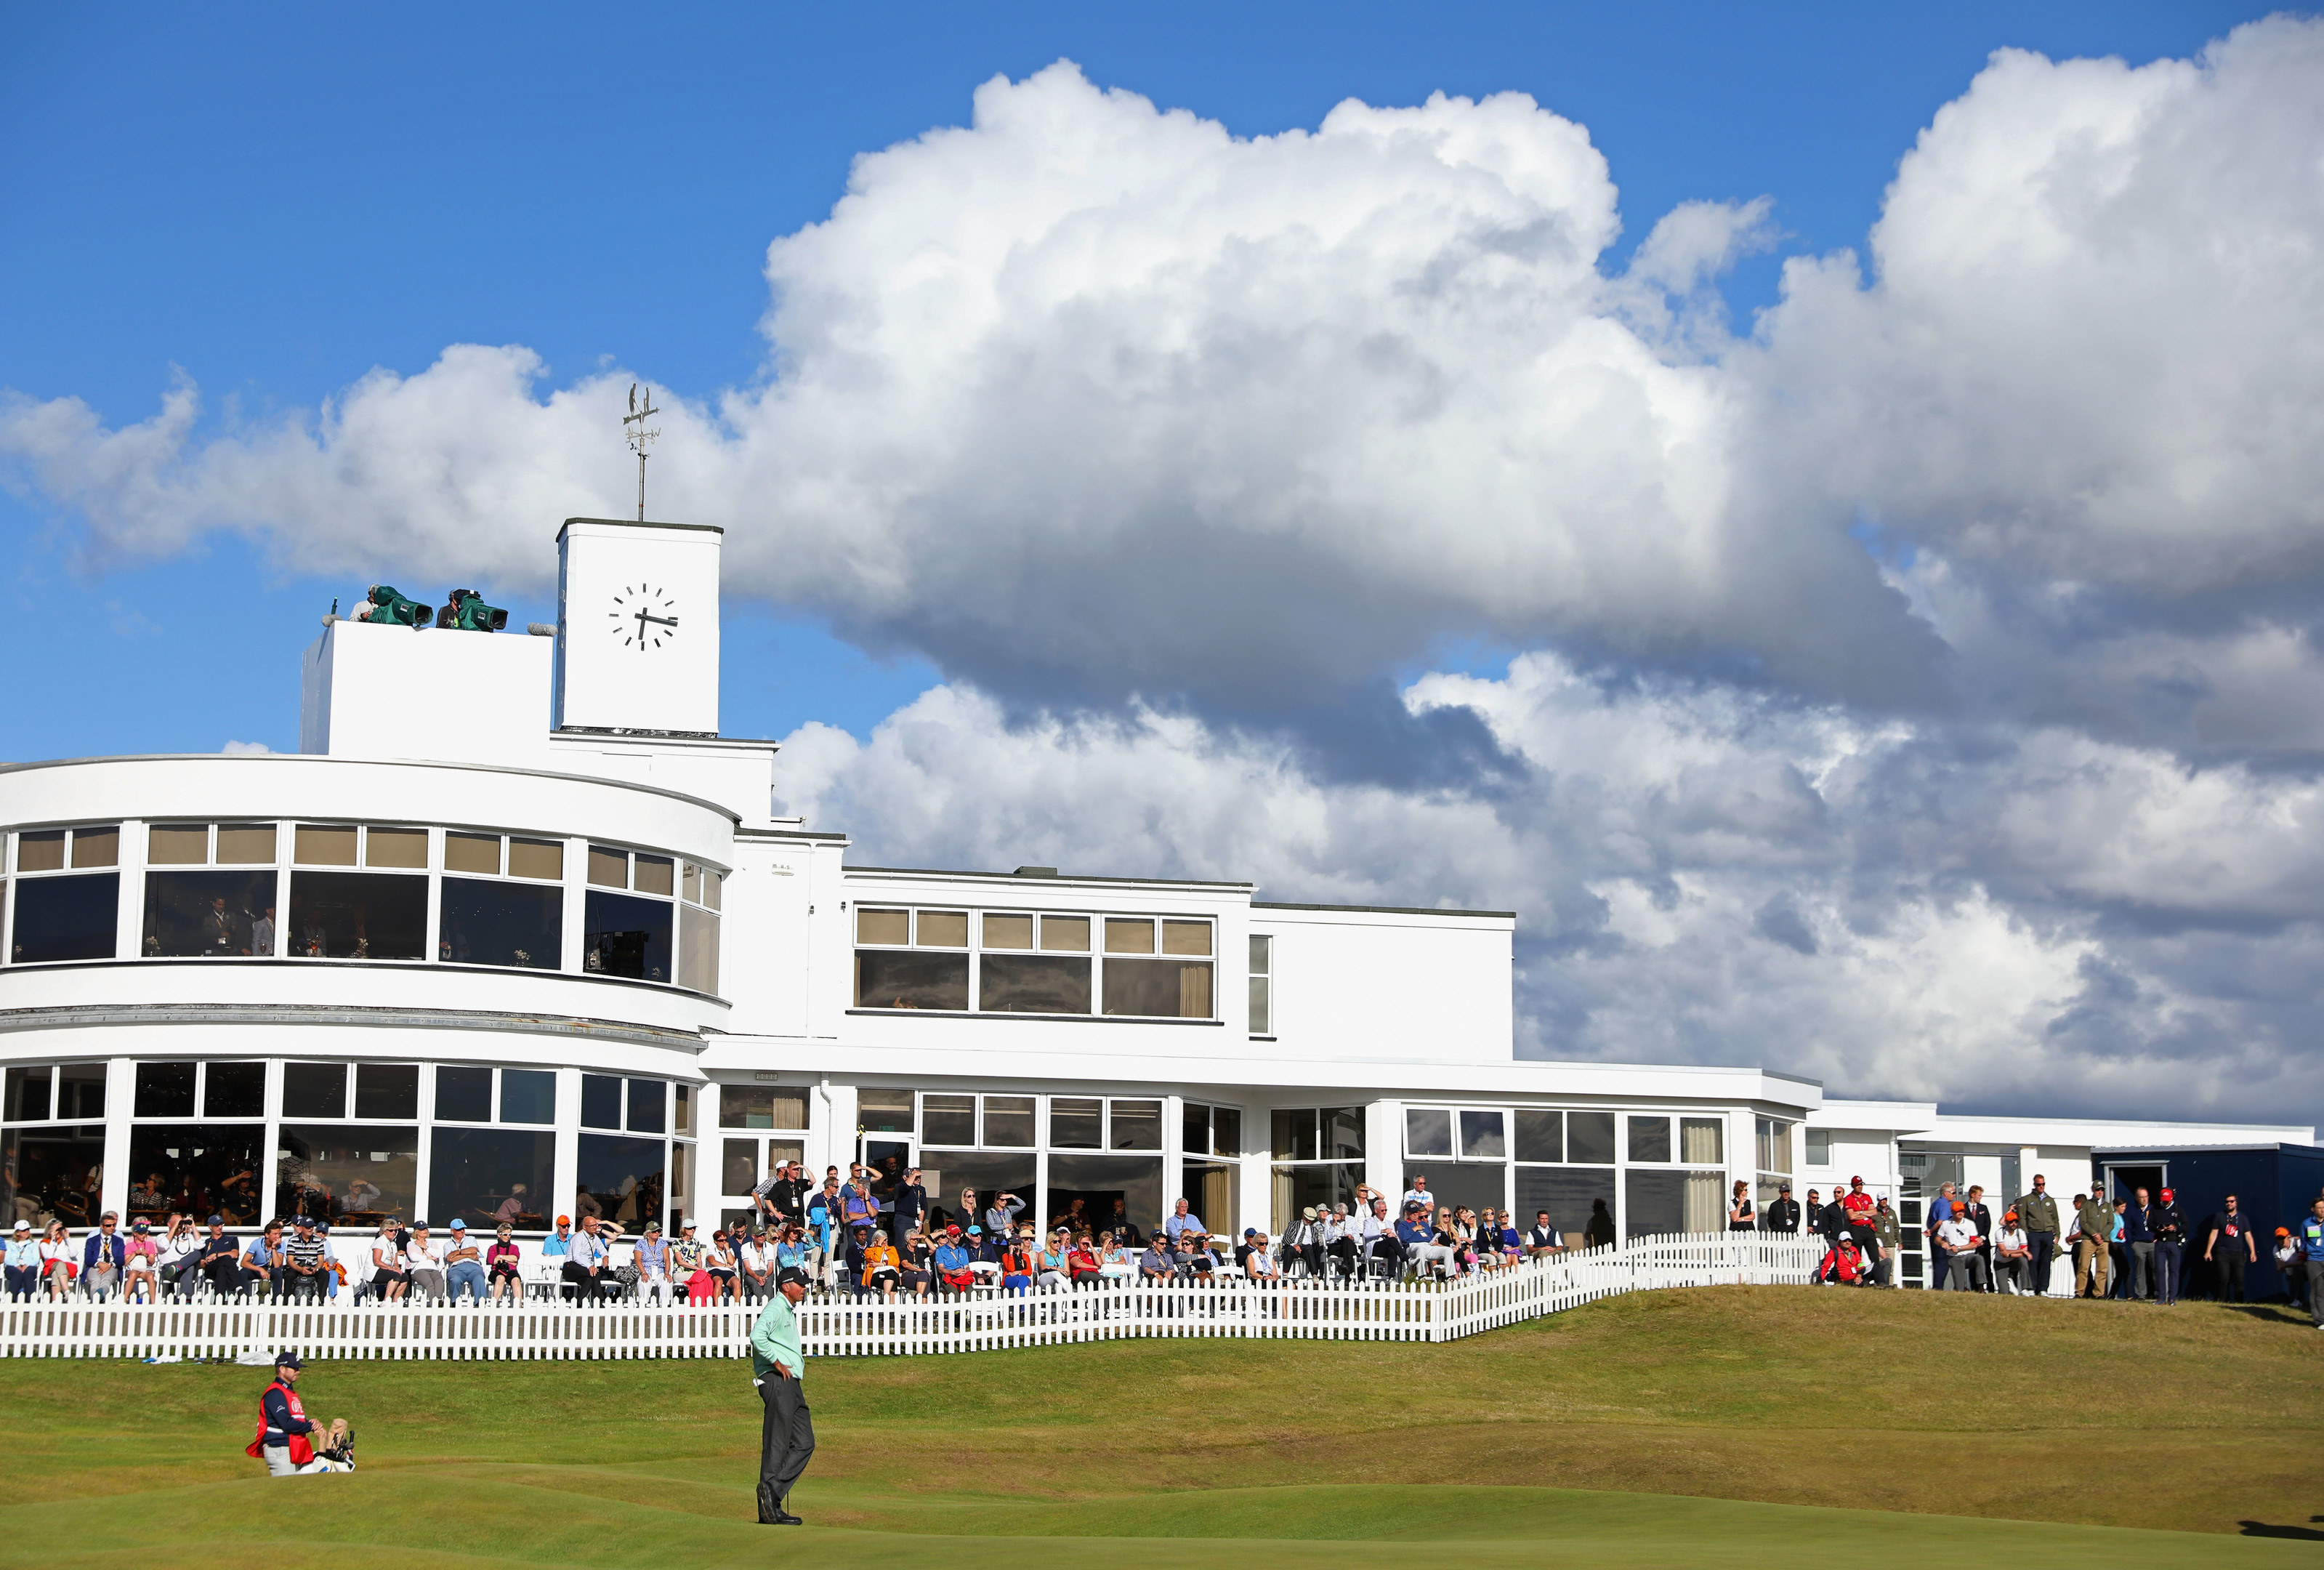 Matt Kuchar gets up and down at the back of the 18th to complete his co-leading 65 at Birkdale.